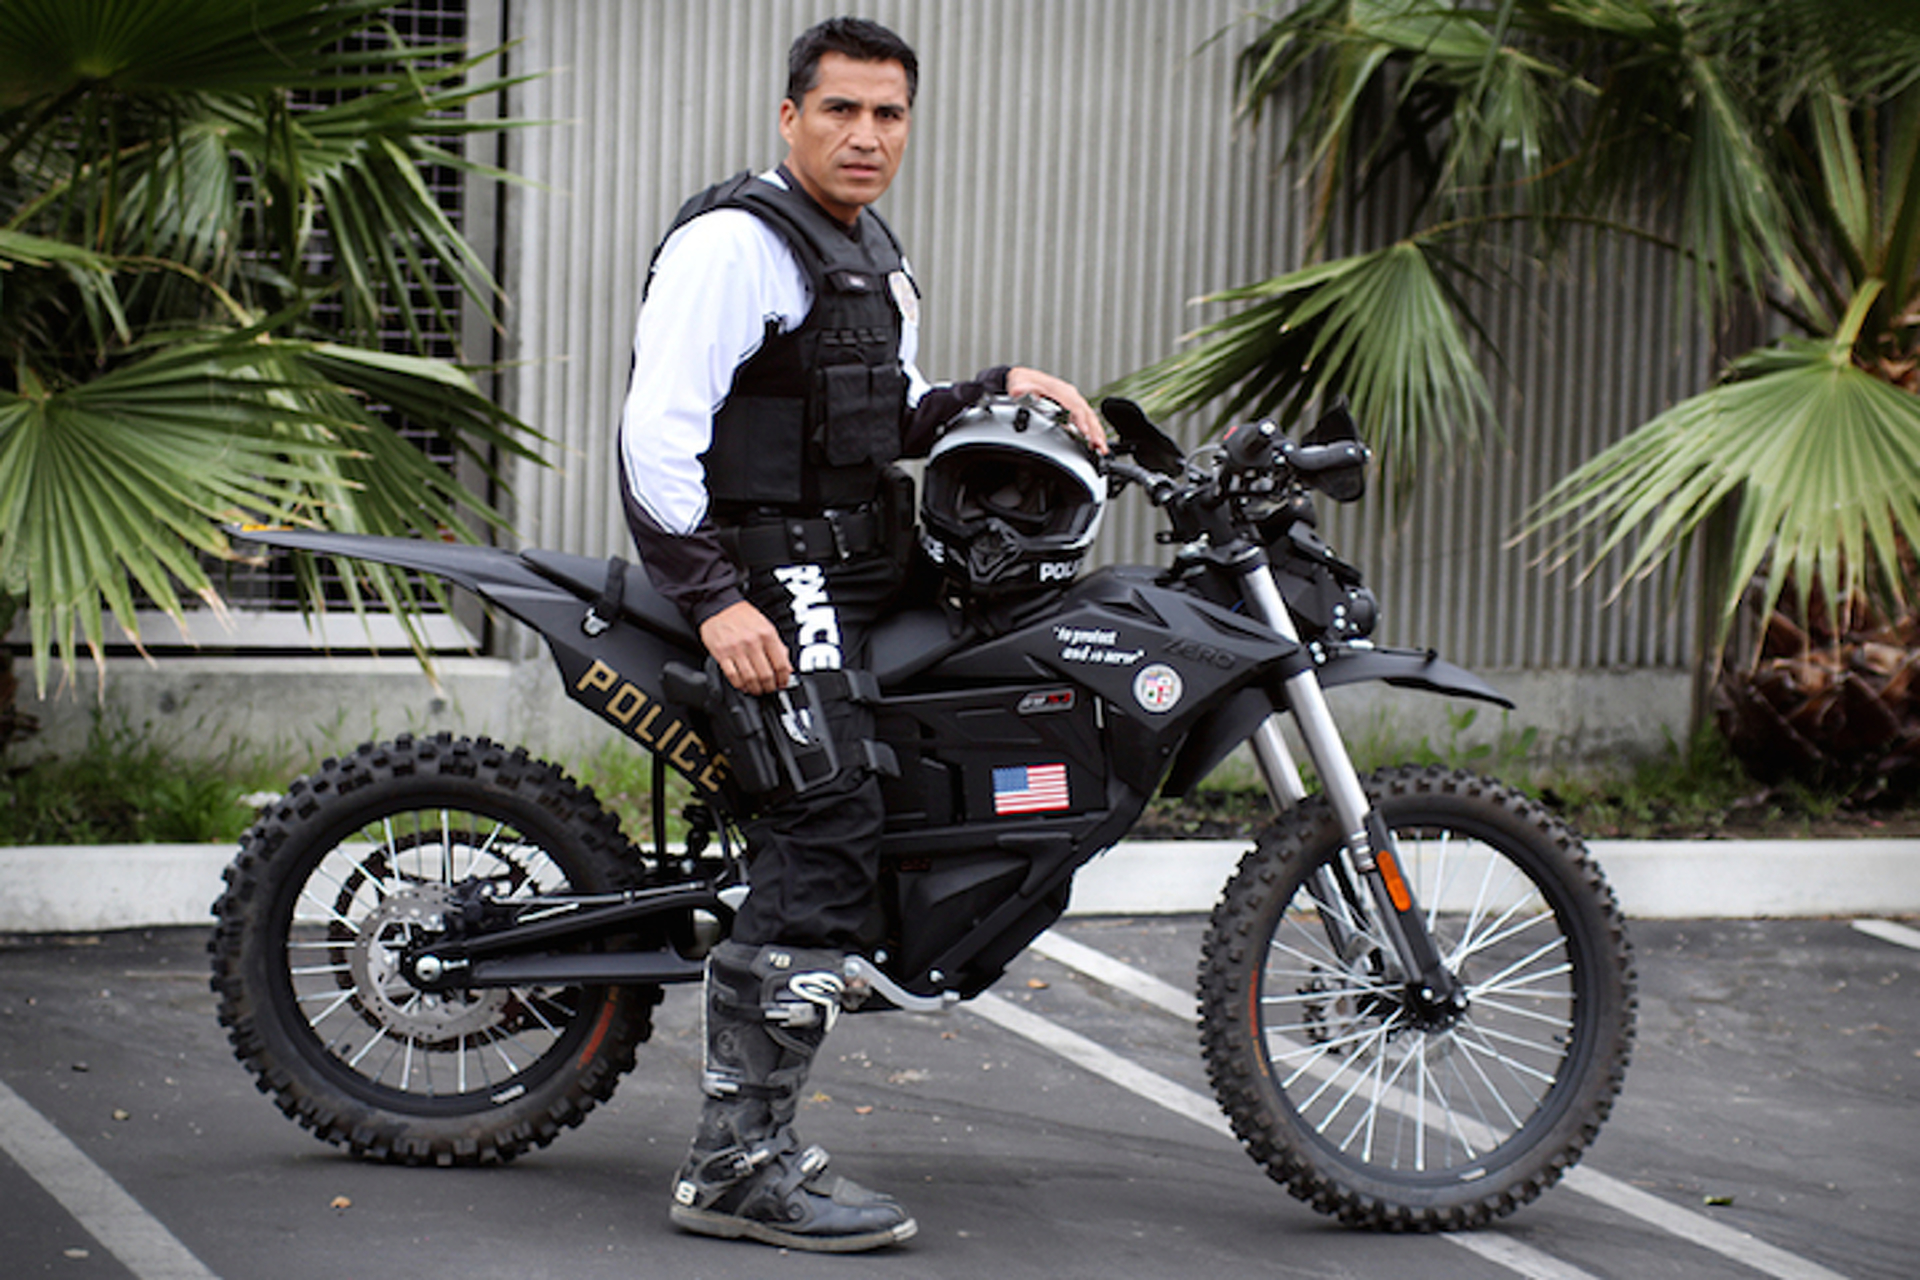 The LAPD Just Bought a Military-Grade Electric Motorcycle And It's Awesome